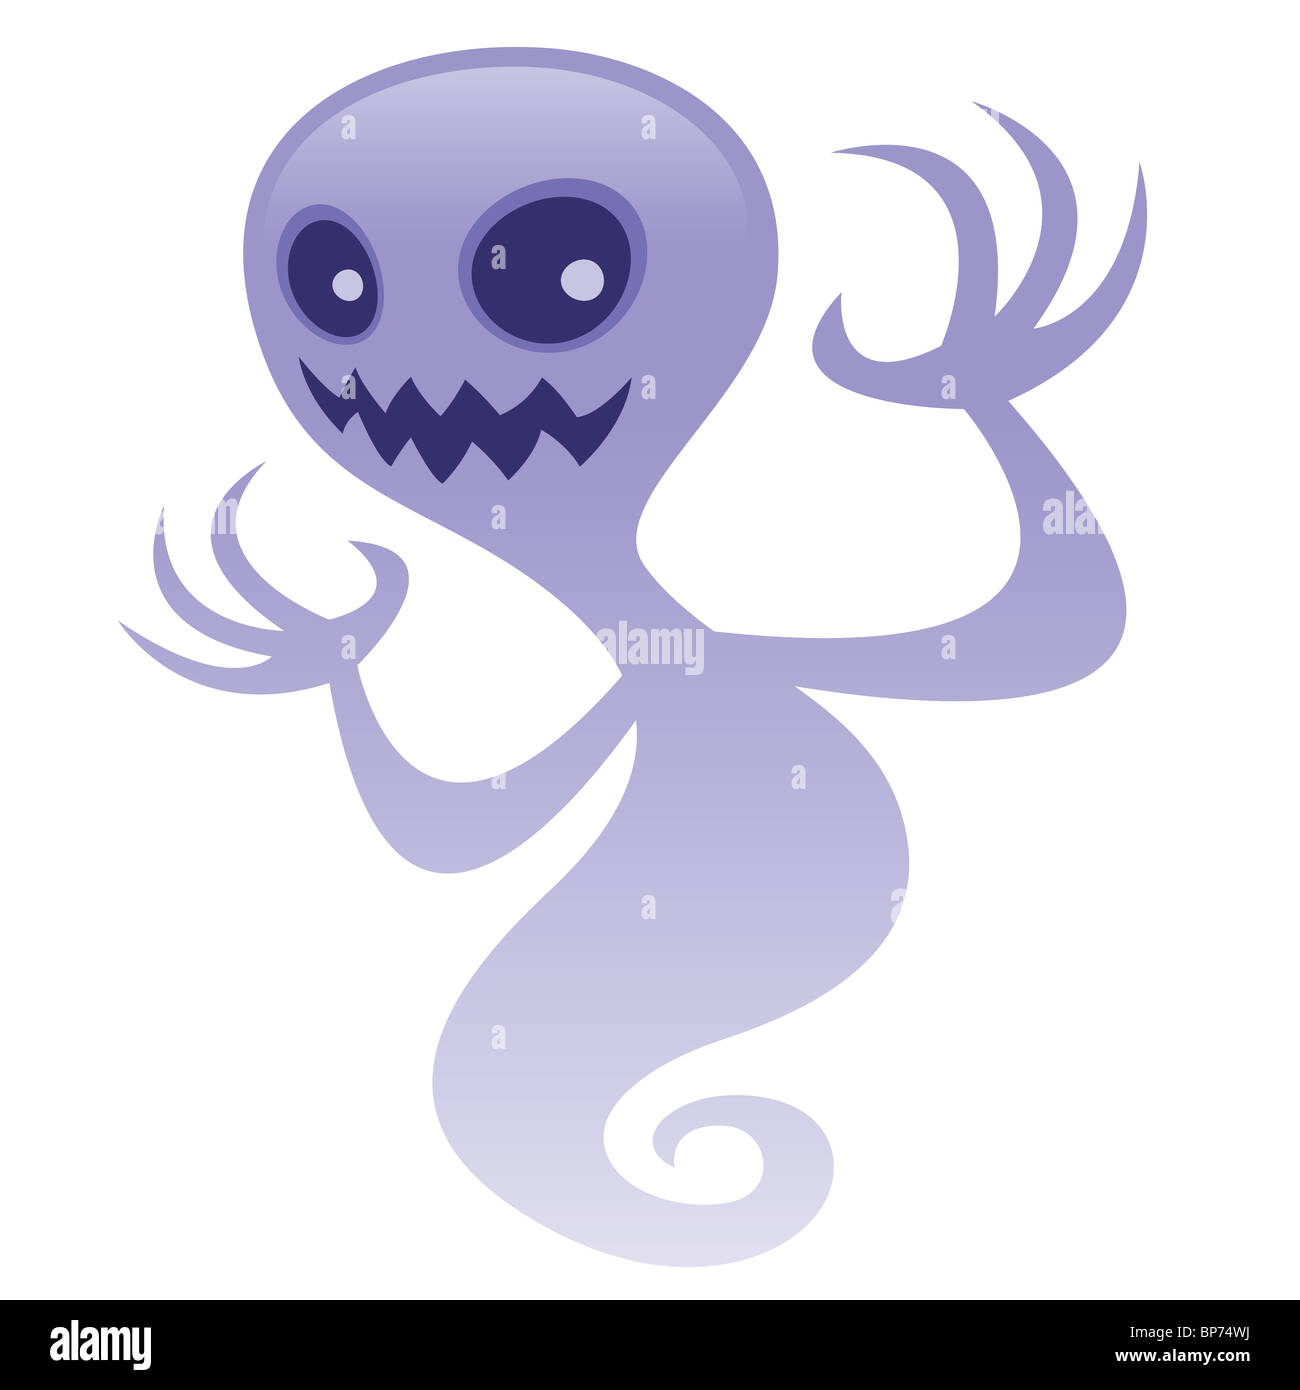 Grinning Ghost. - Stock Image